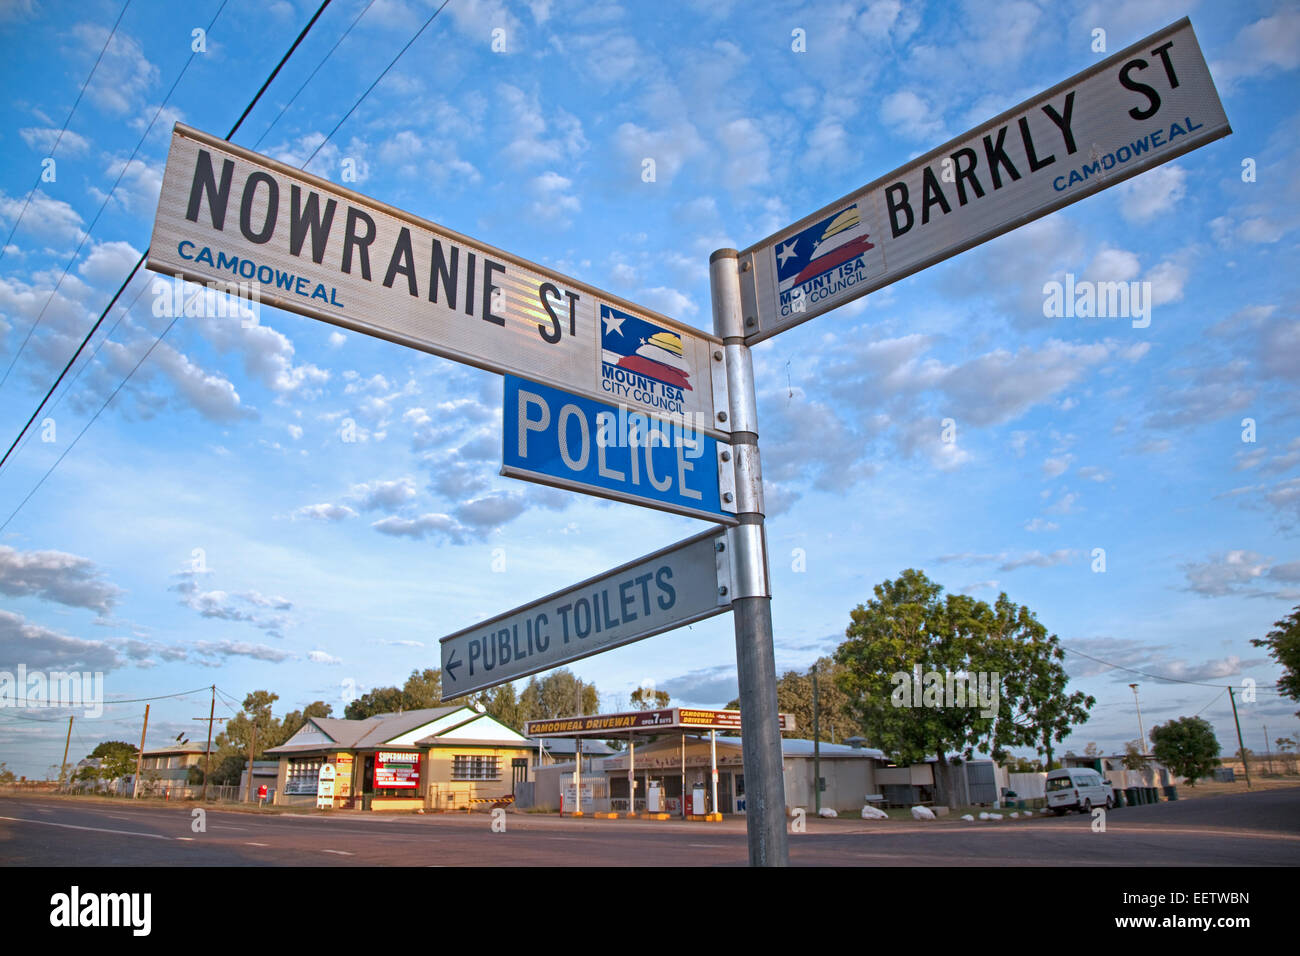 Signpost along the Barkly Highway at Camooweal, small village in north-western Queensland, Australia - Stock Image